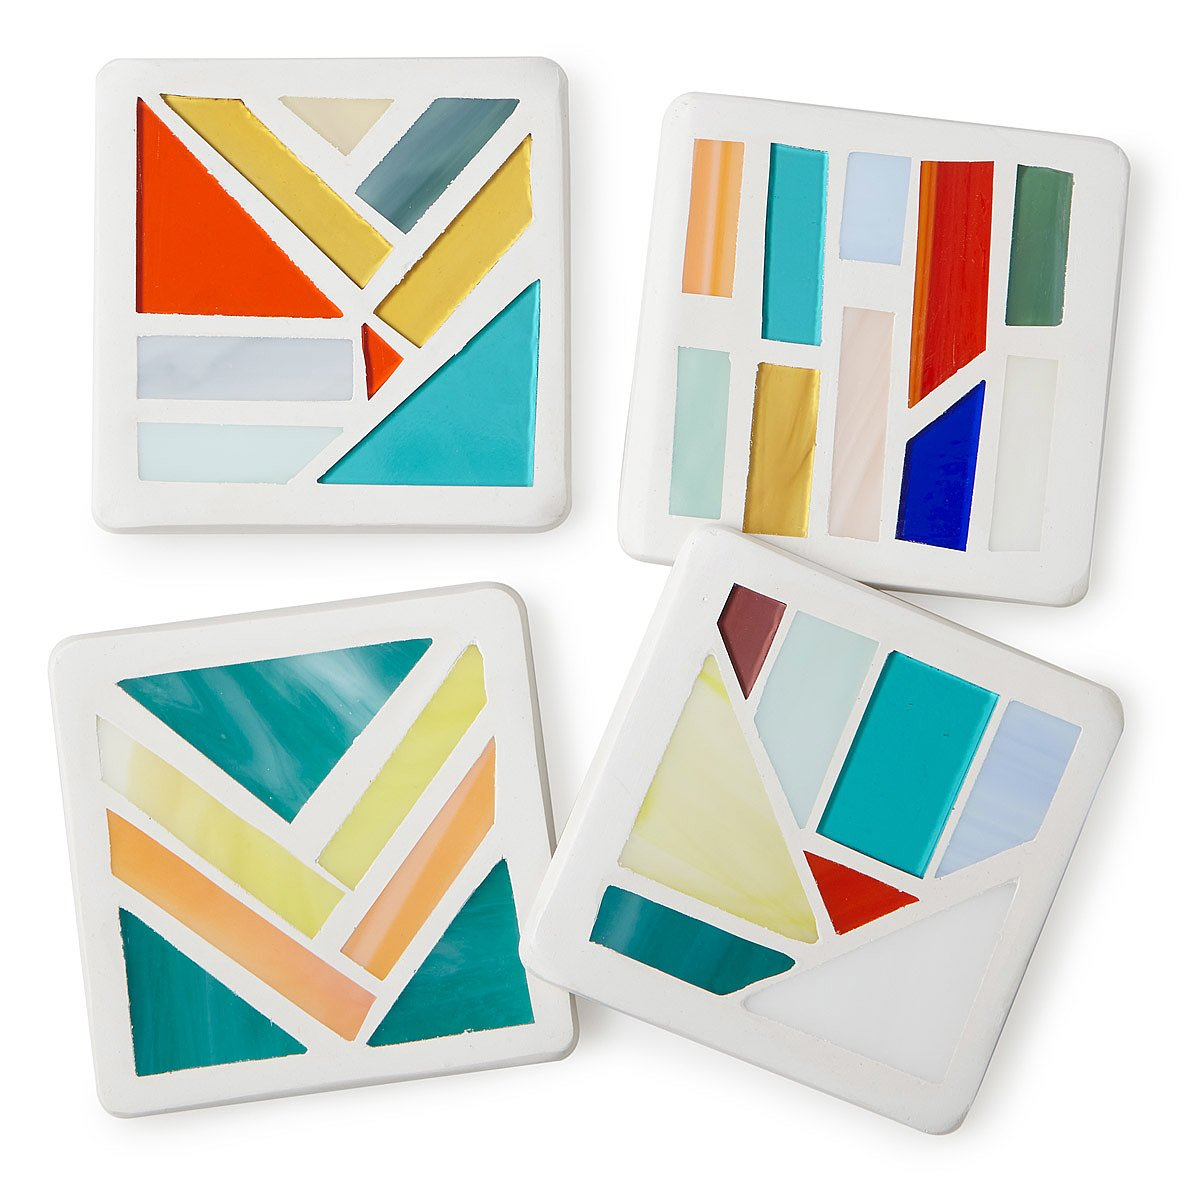 stained glass coasters  set of   mosaic coasters colorful  - stained glass coasters  set of   thumbnail